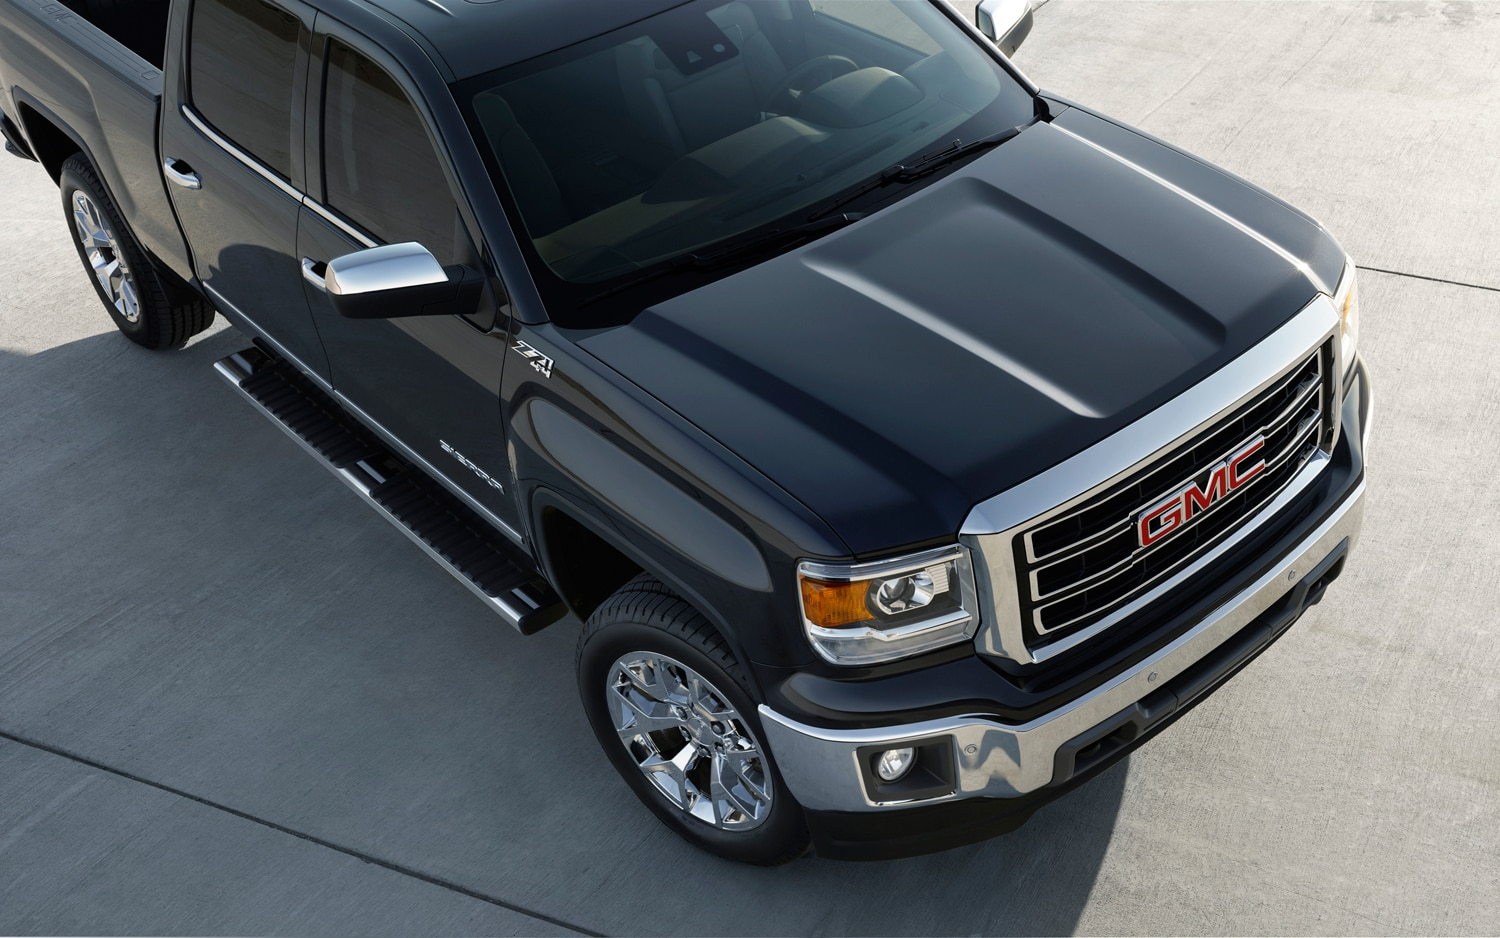 2014 GMC Sierra Hood Detail Location